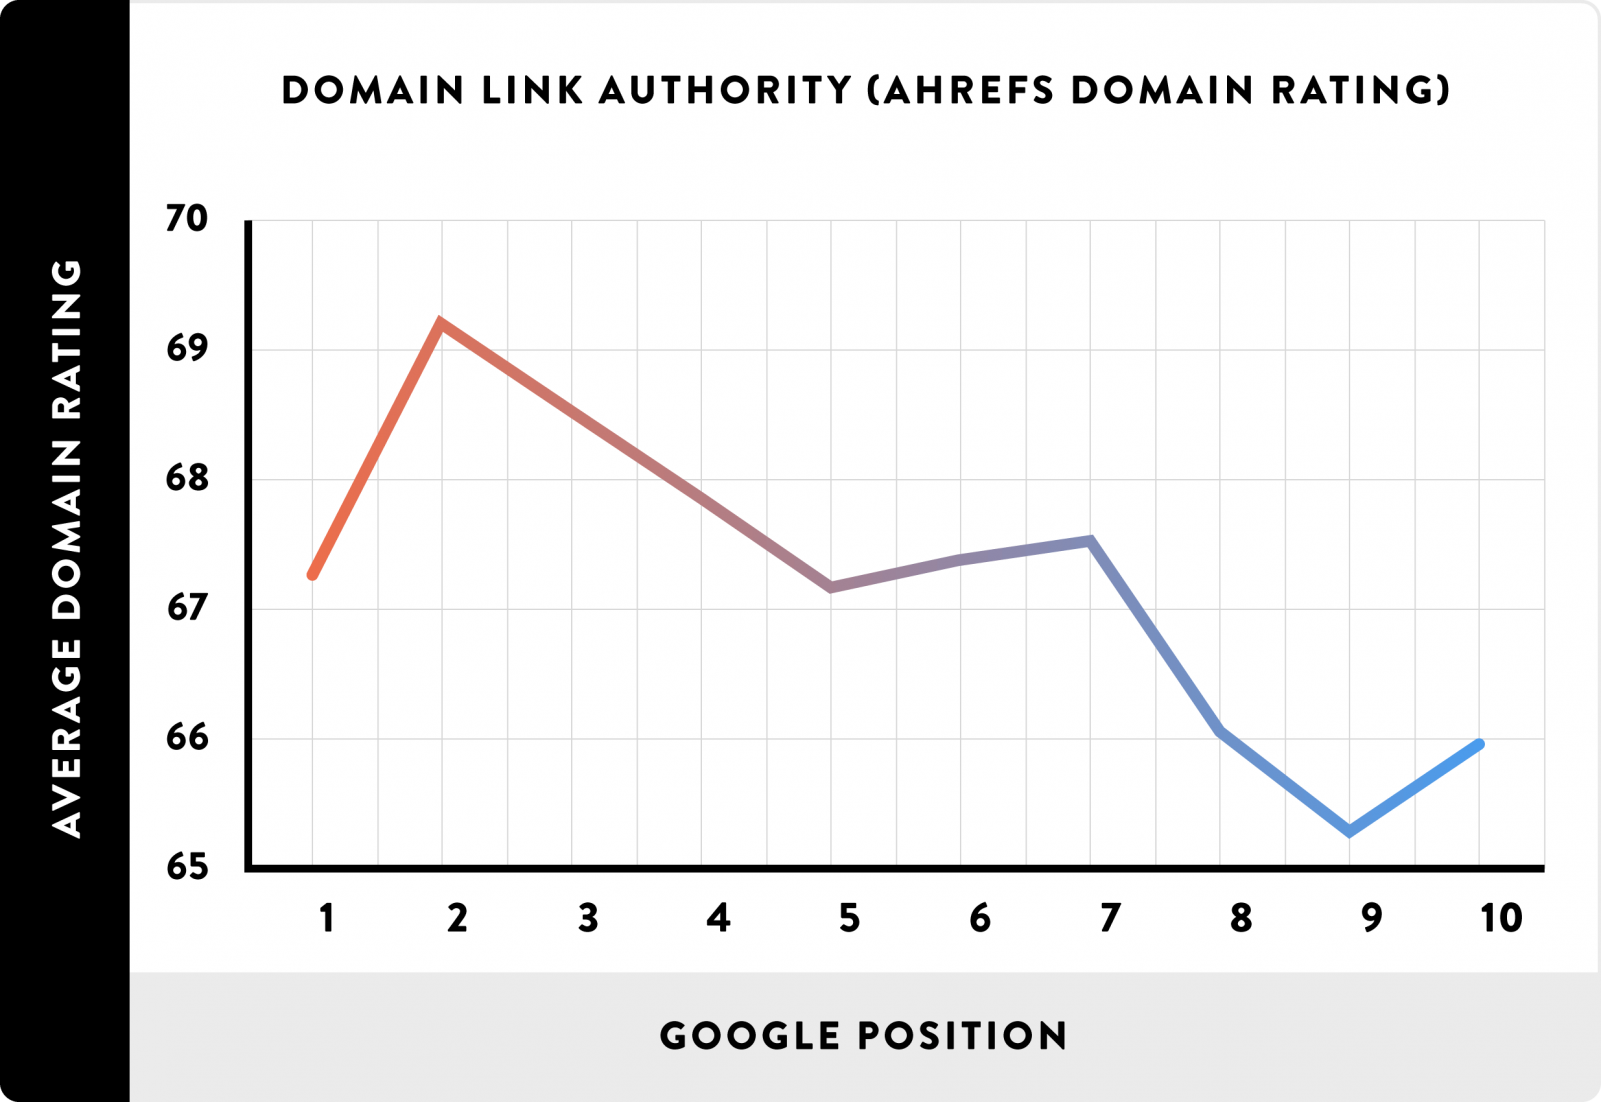 08_Domain Link Authority (AHREFs Domain Rating)_line